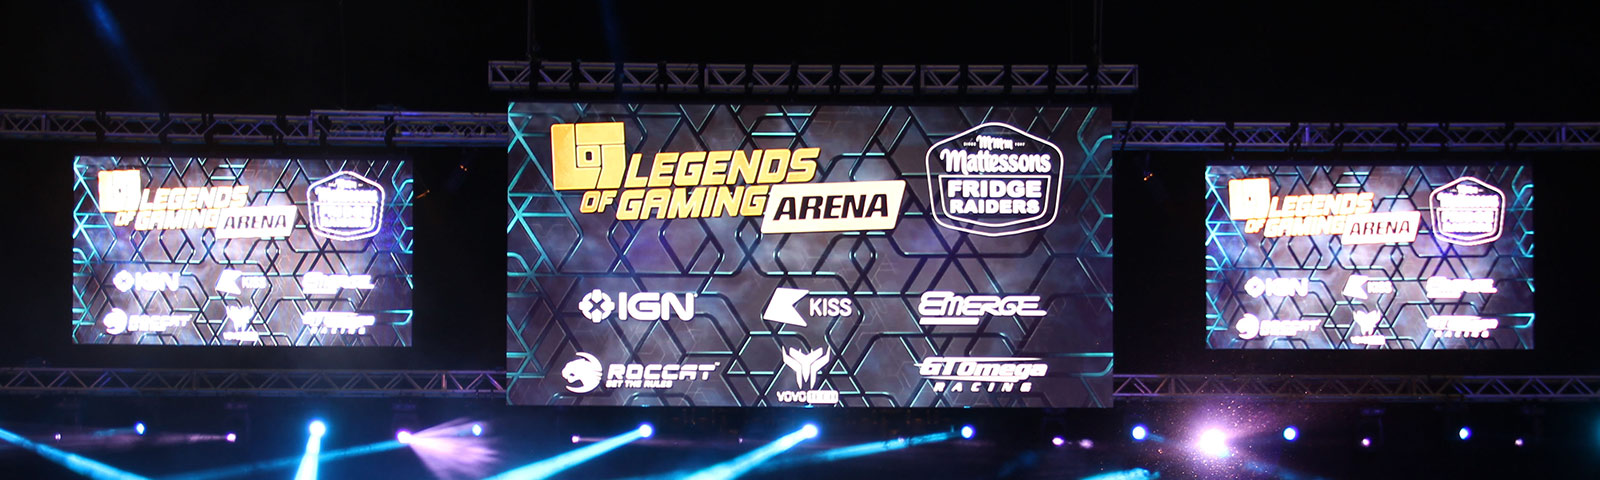 Fonix LED - LED Screen Hire - Case Study - Legends of Gaming